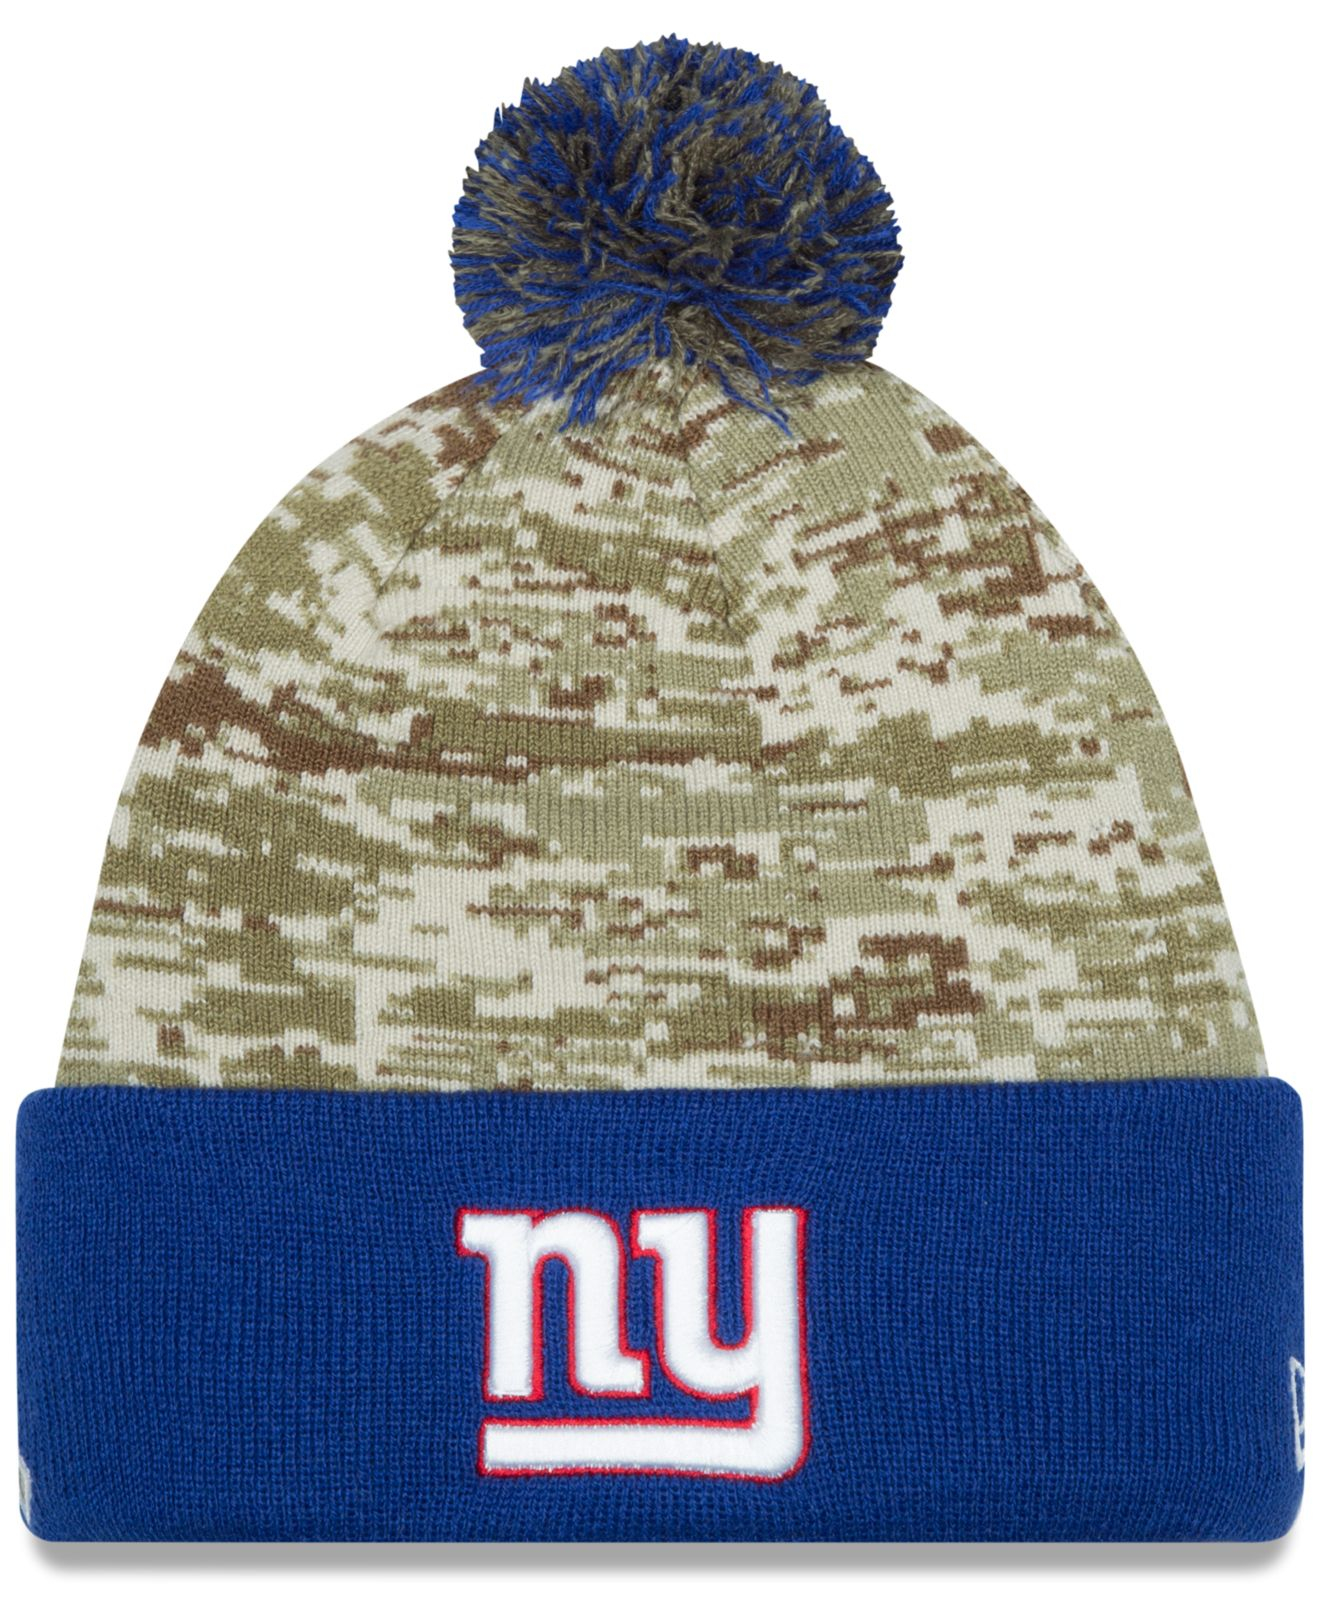 73820b231 ... best price lyst ktz new york giants salute to service knit hat in green  for men